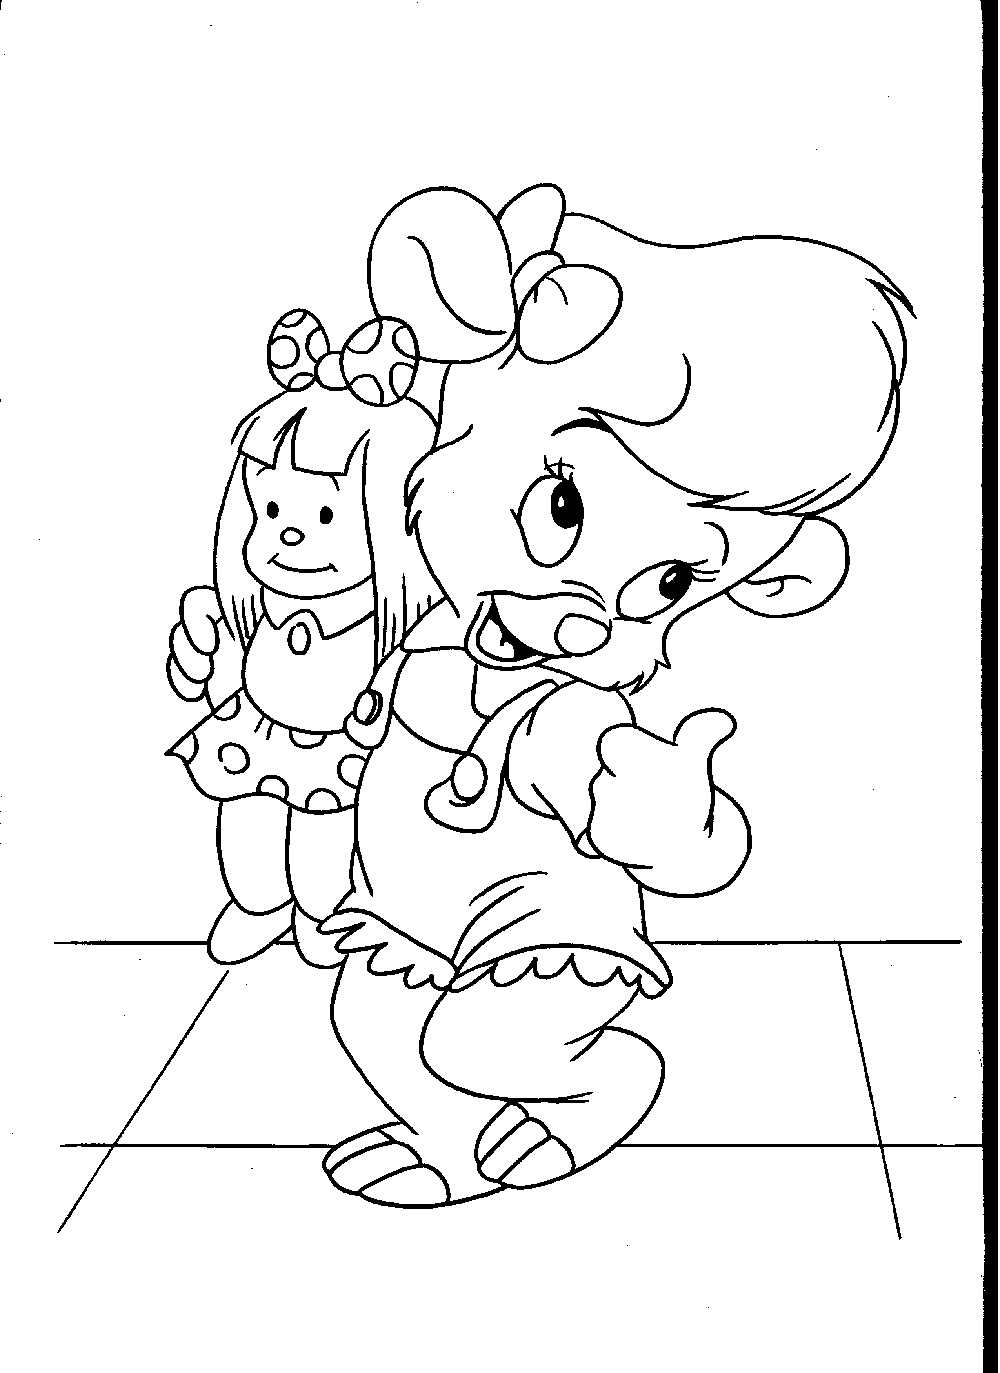 Becky G Coloring Pictures: Pin hotel transylvania coloring pages ...